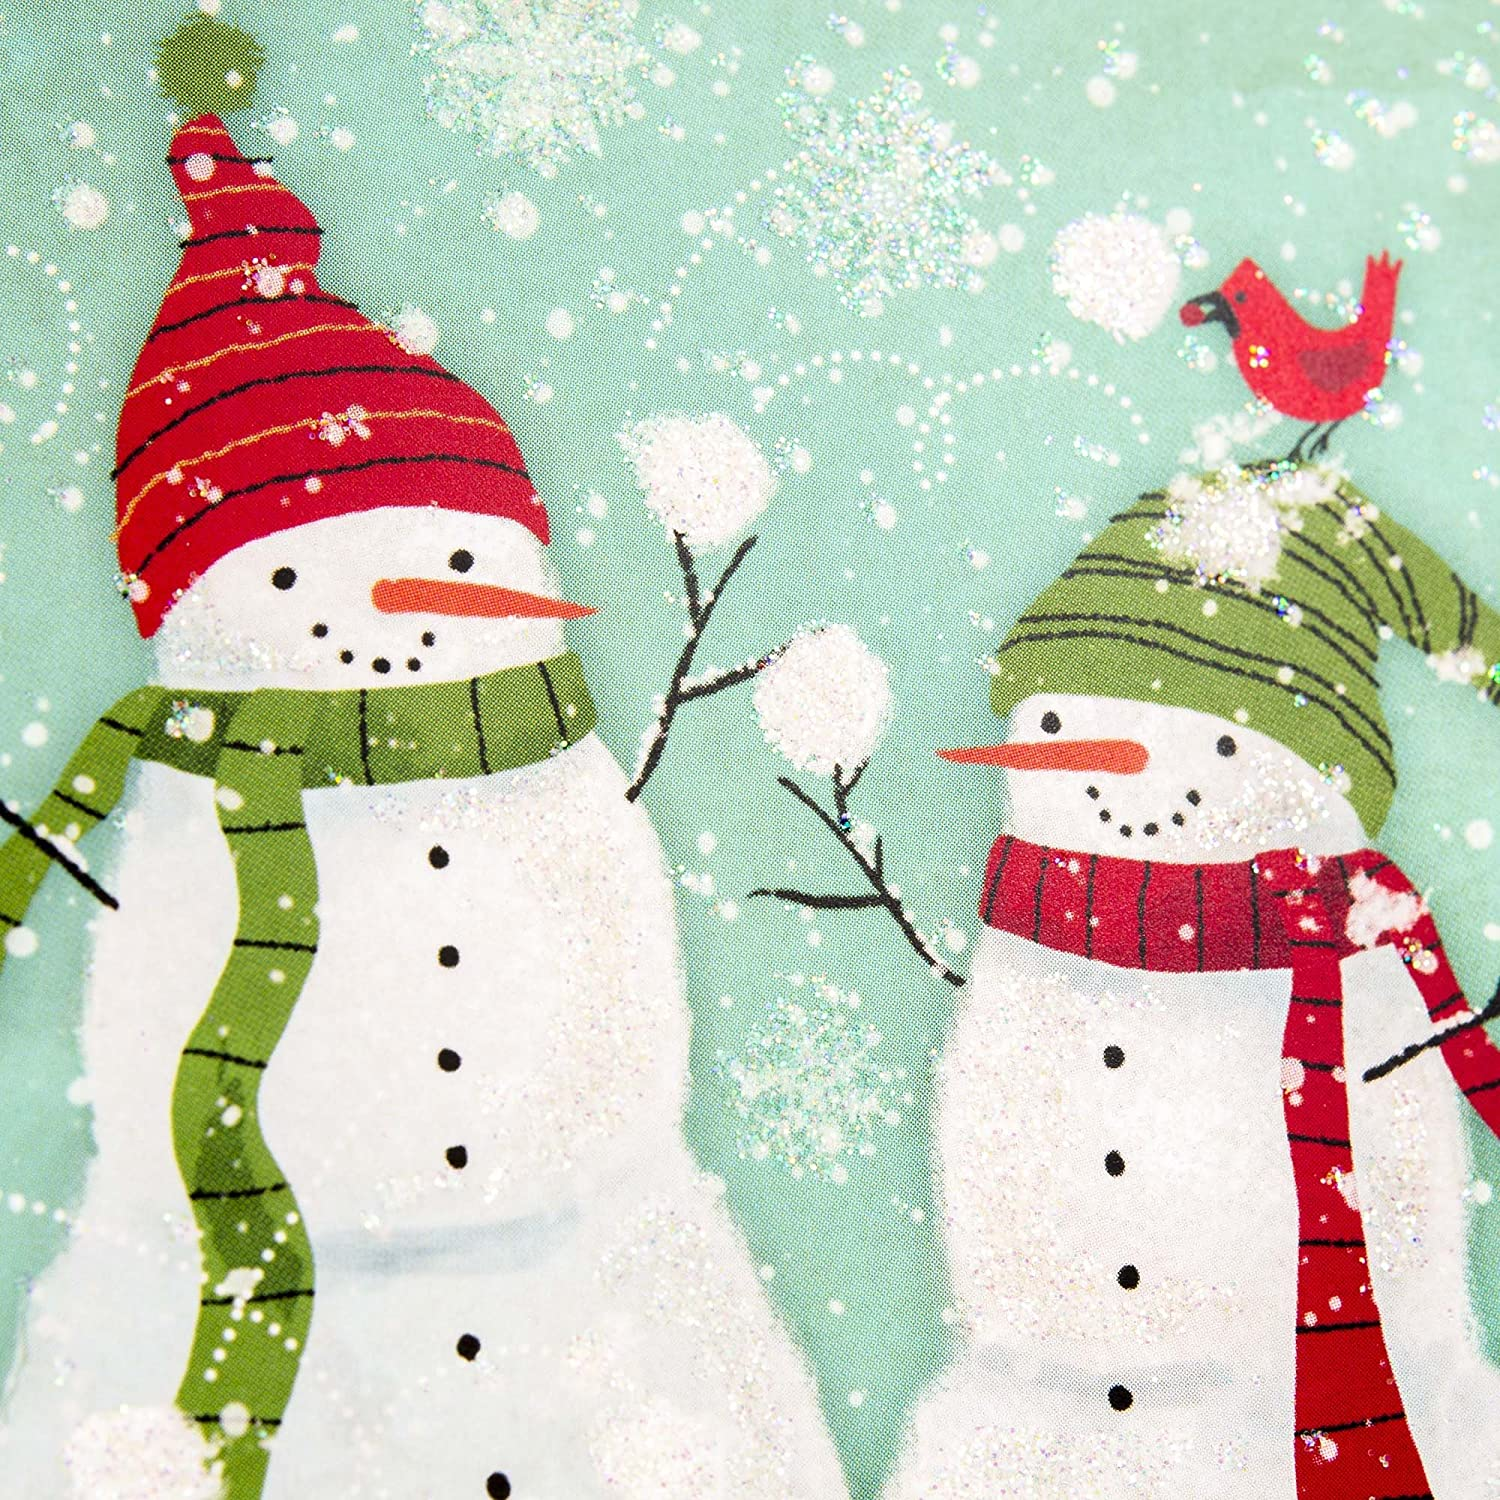 Amazon.com : Hallmark Holiday Boxed Cards (Snowman Snowball Fight ...